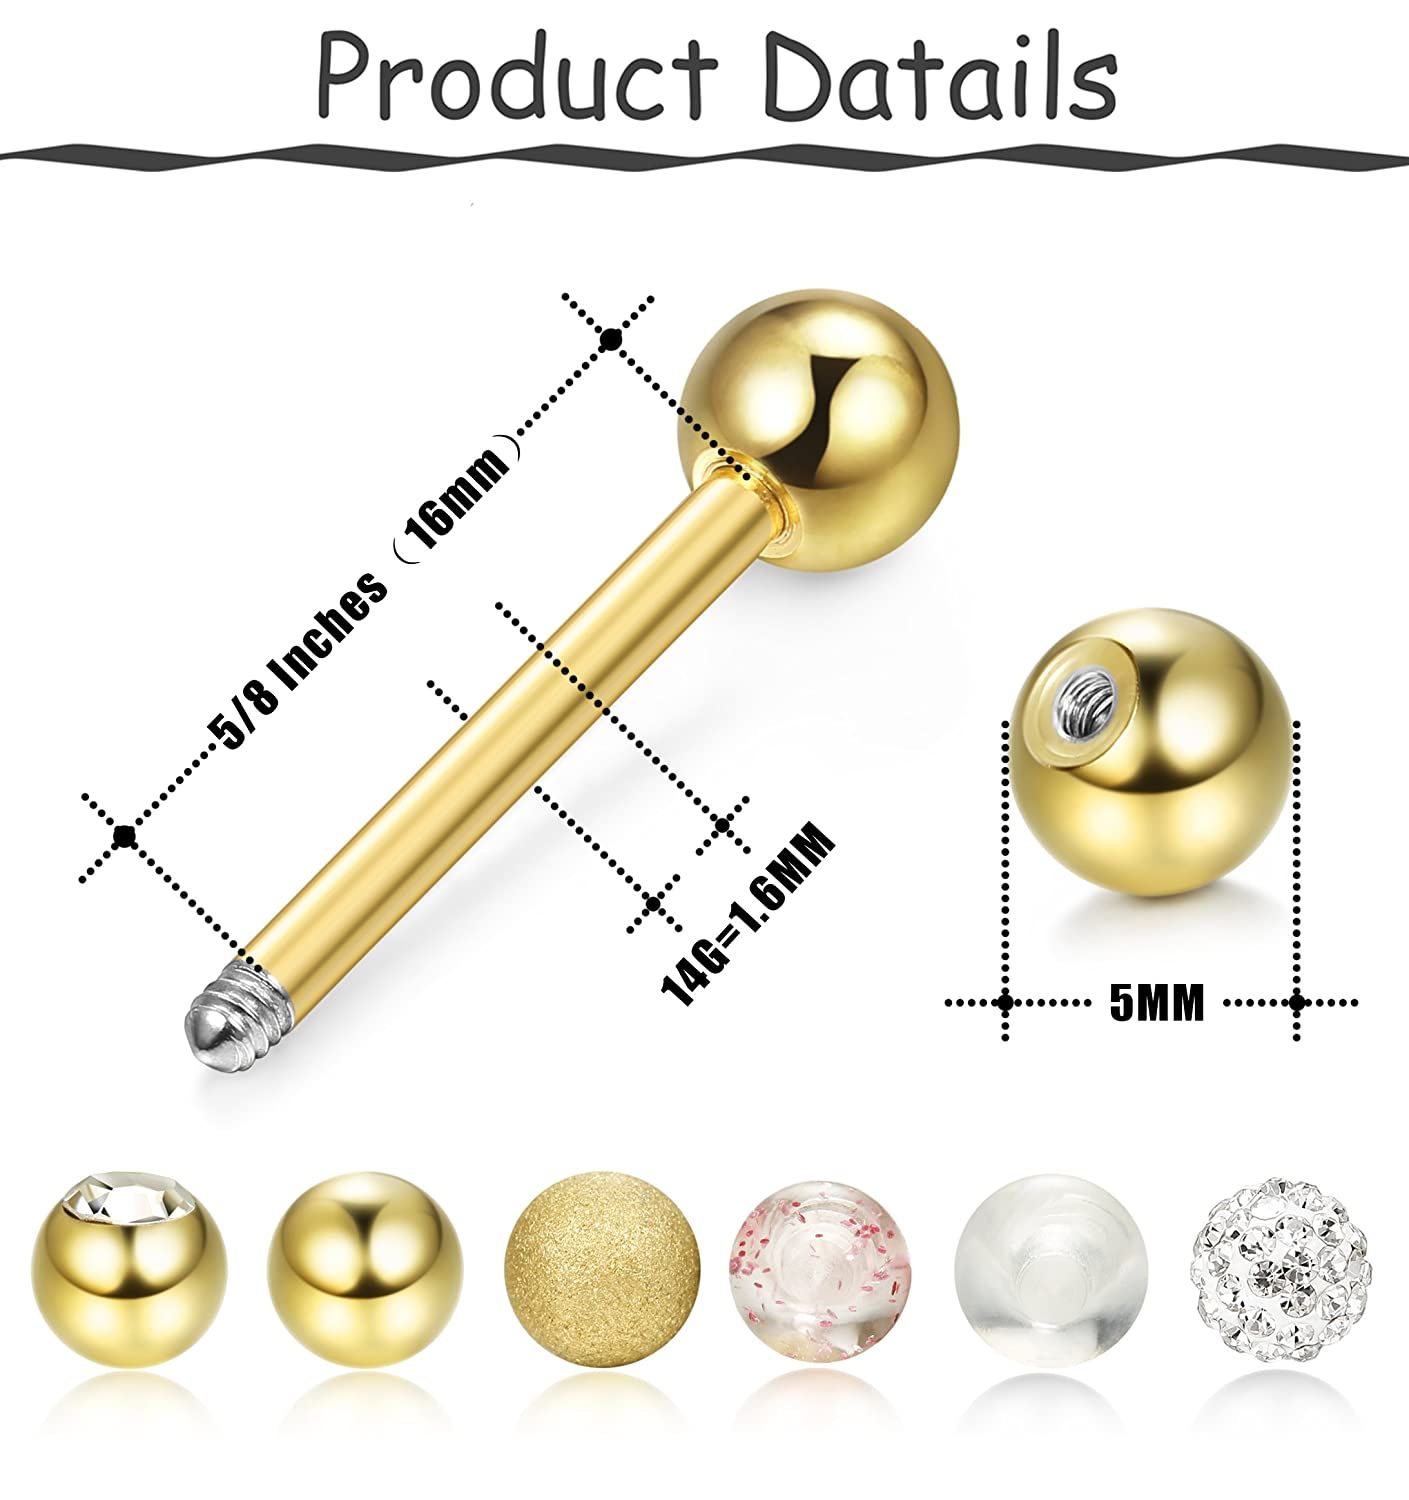 1 x BARBELL BAR 14g x 18mm TONGUE PIERCING 316L STAINLESS STEEL